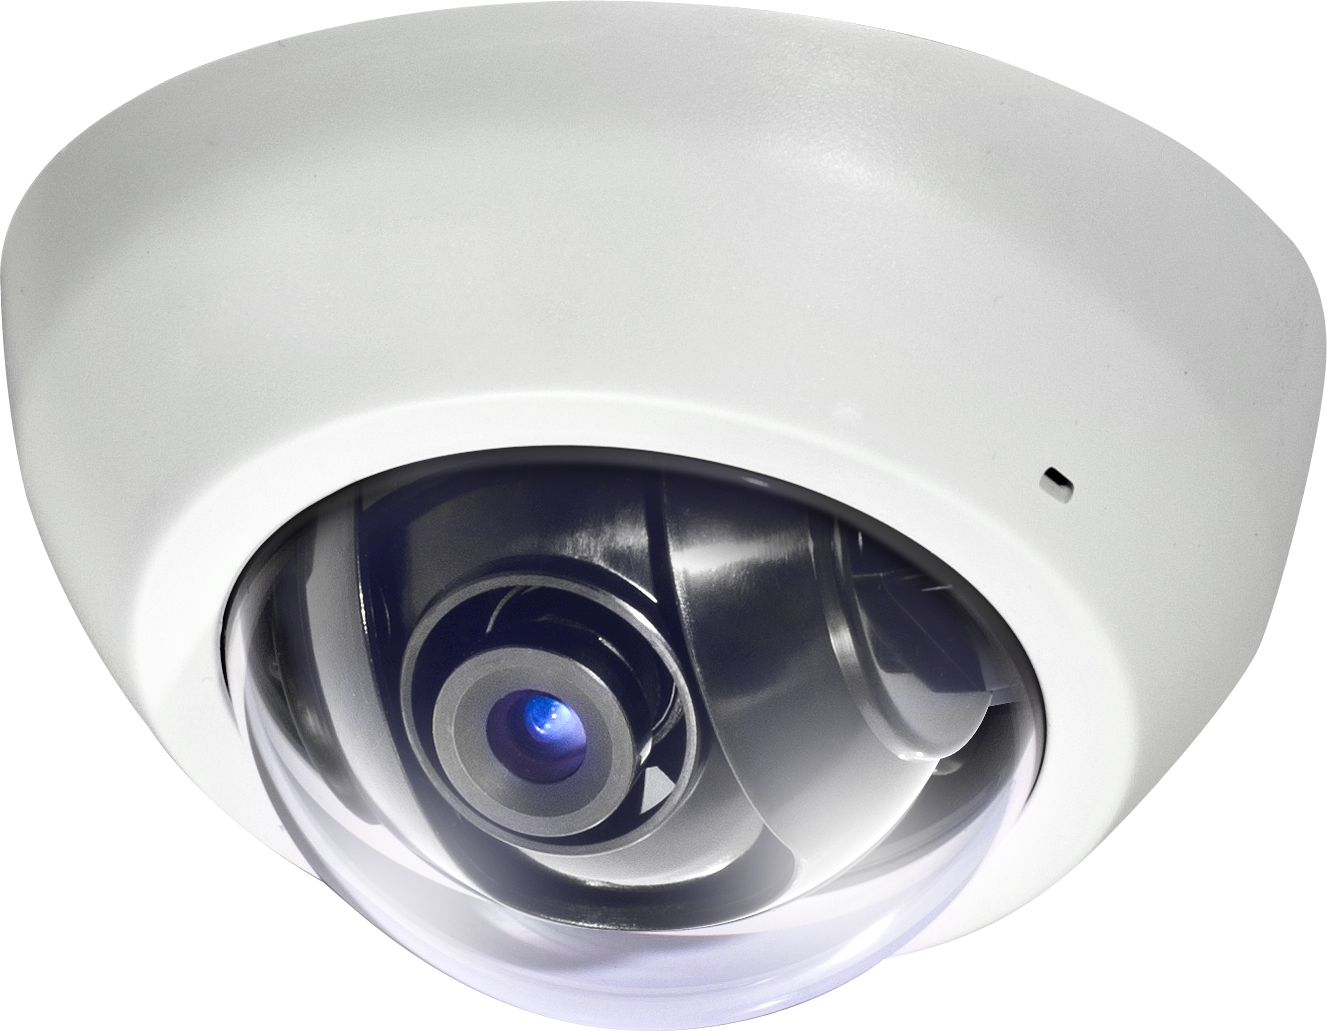 Security camera png. Transparent picture mart